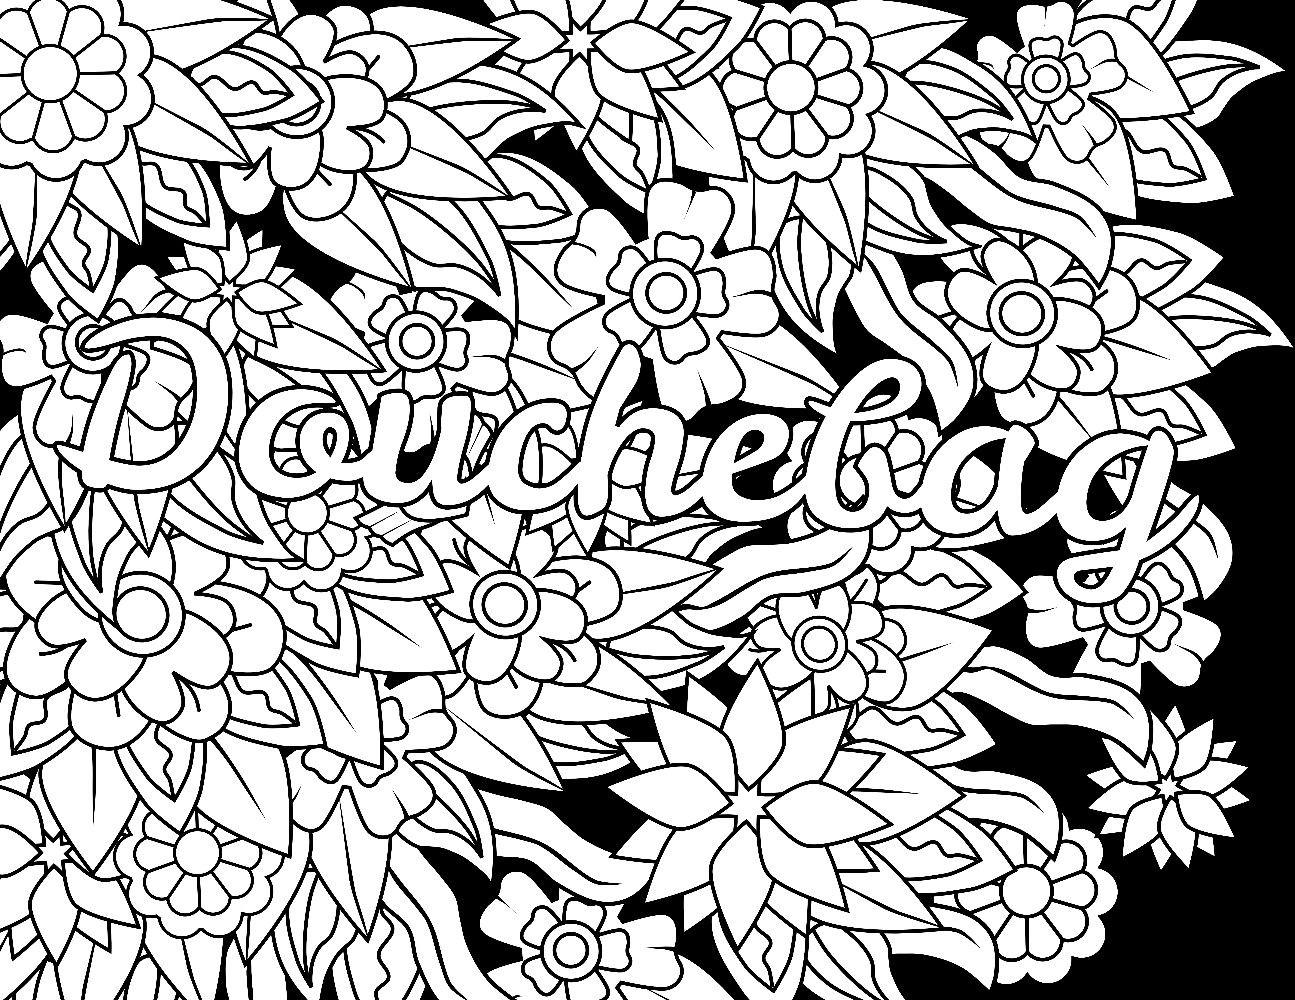 Coloring Pages For Adults Words  Best Douchebag Swear Word Coloring Page Adult Coloring